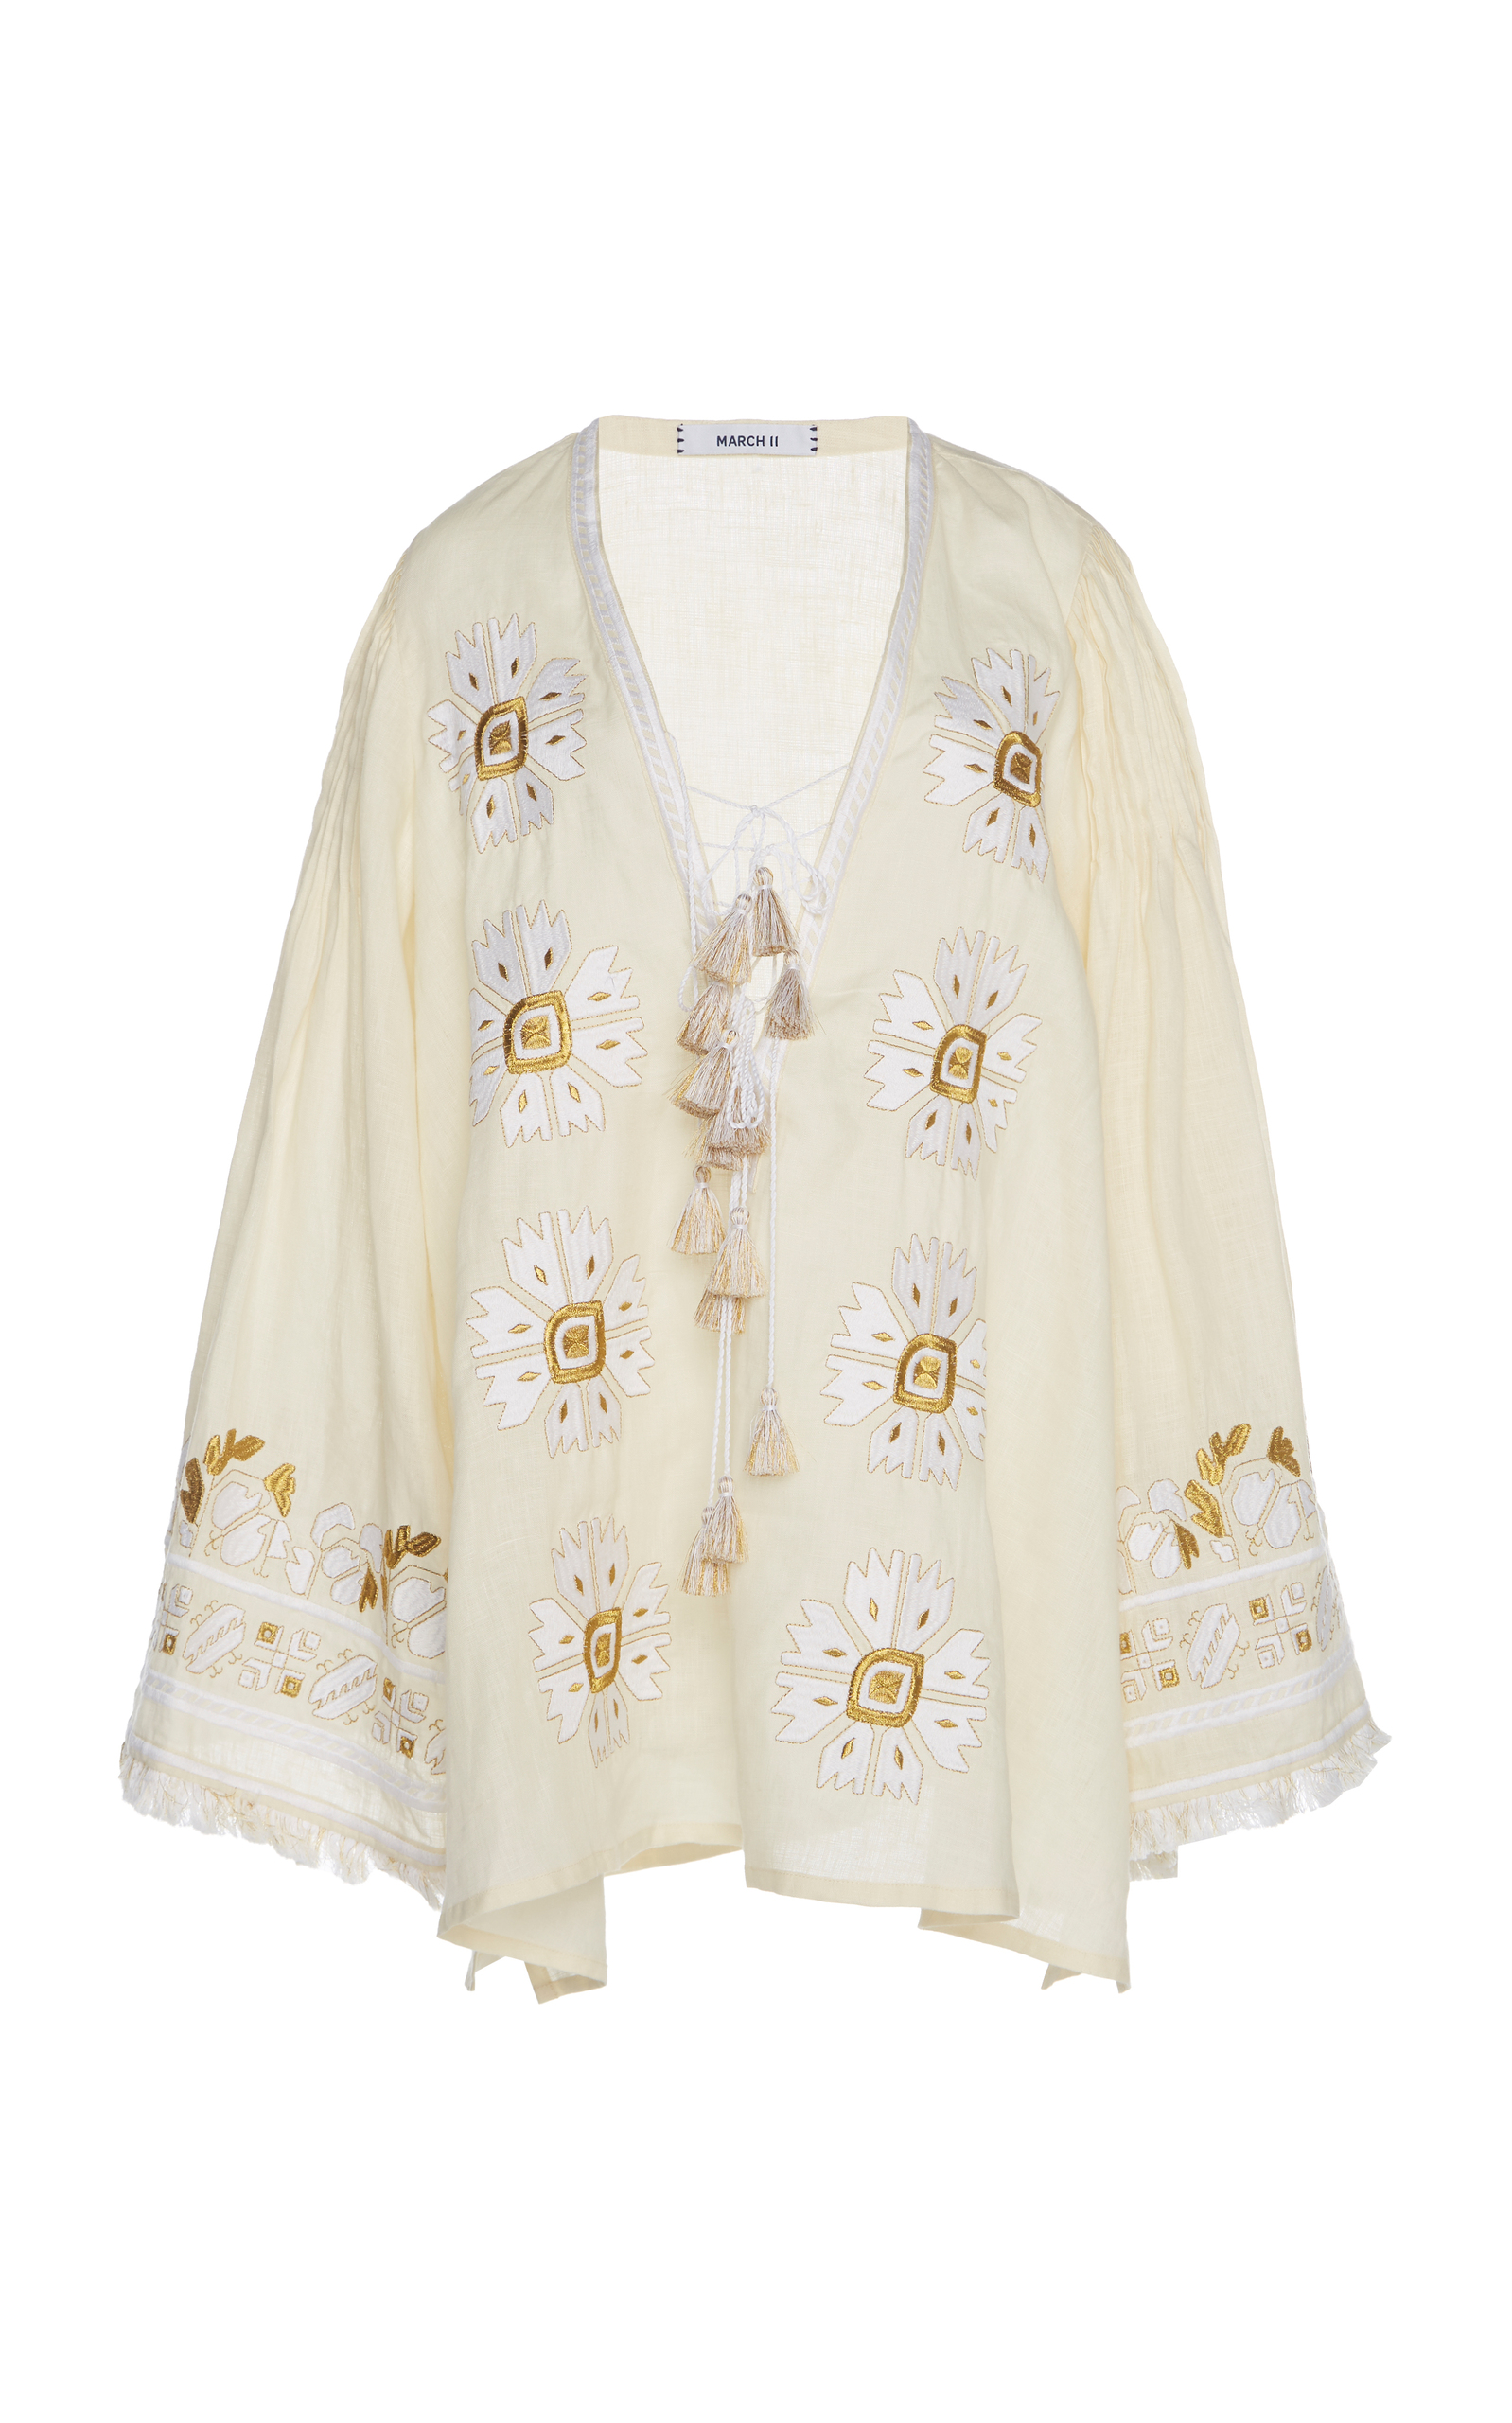 MARCH11 Kelly Tunic in White